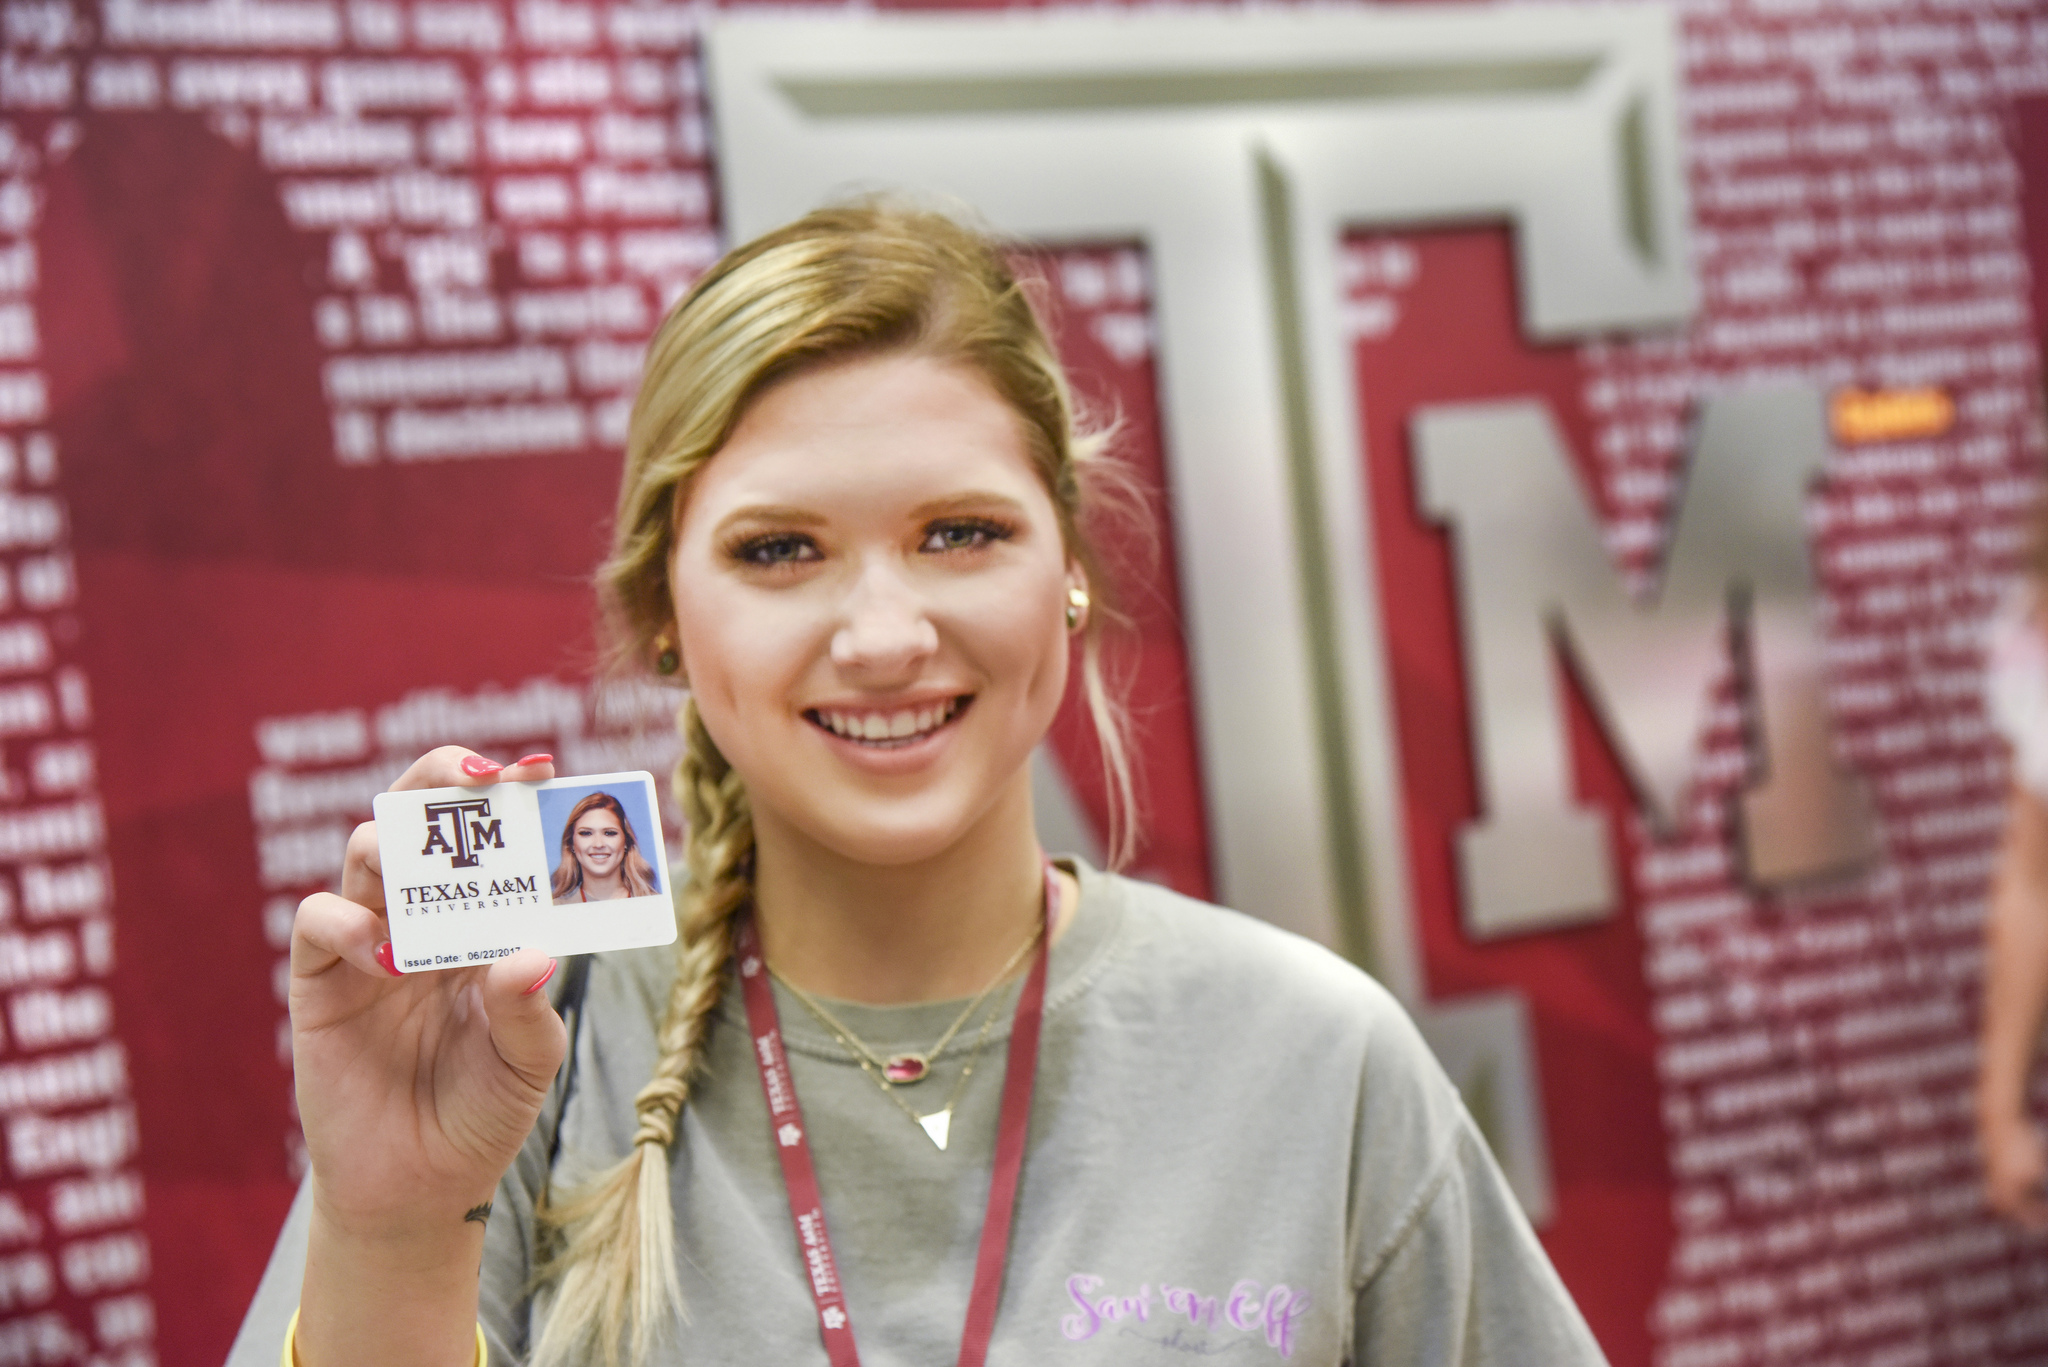 female student holding up an Aggie Card